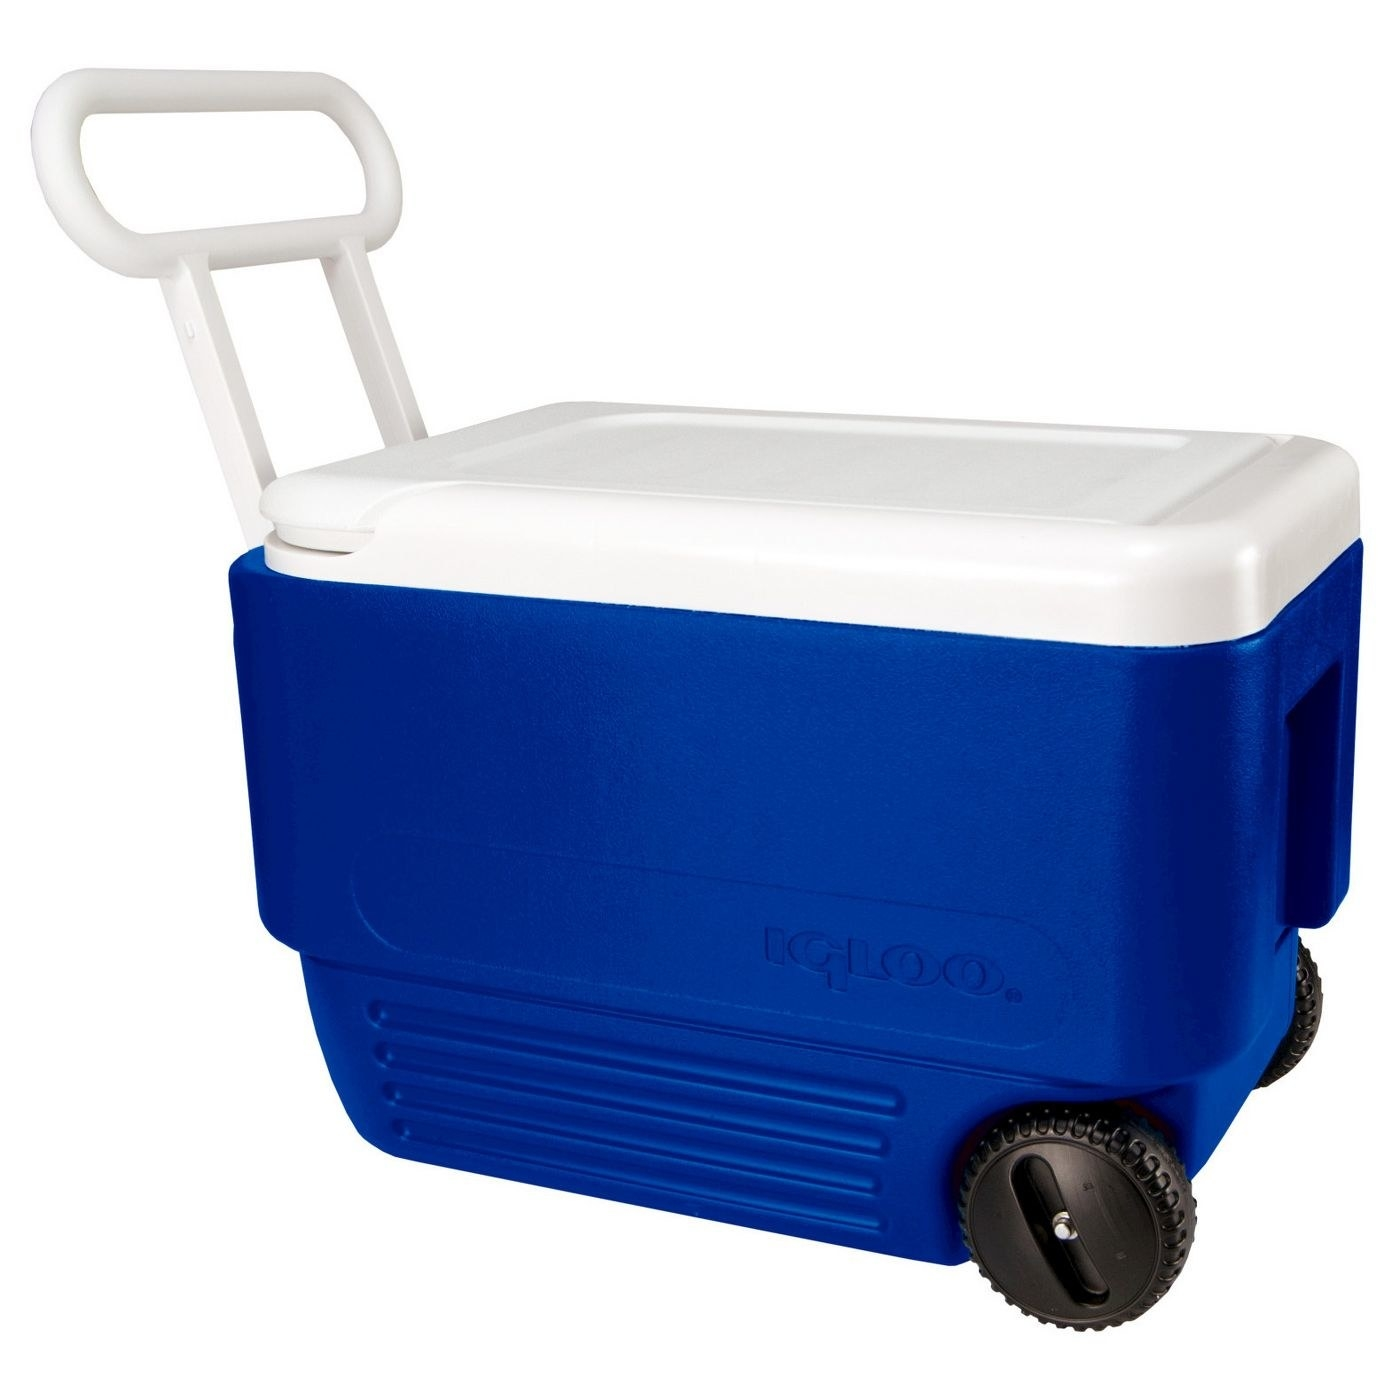 Igloo Wheelie cooler in blue and white